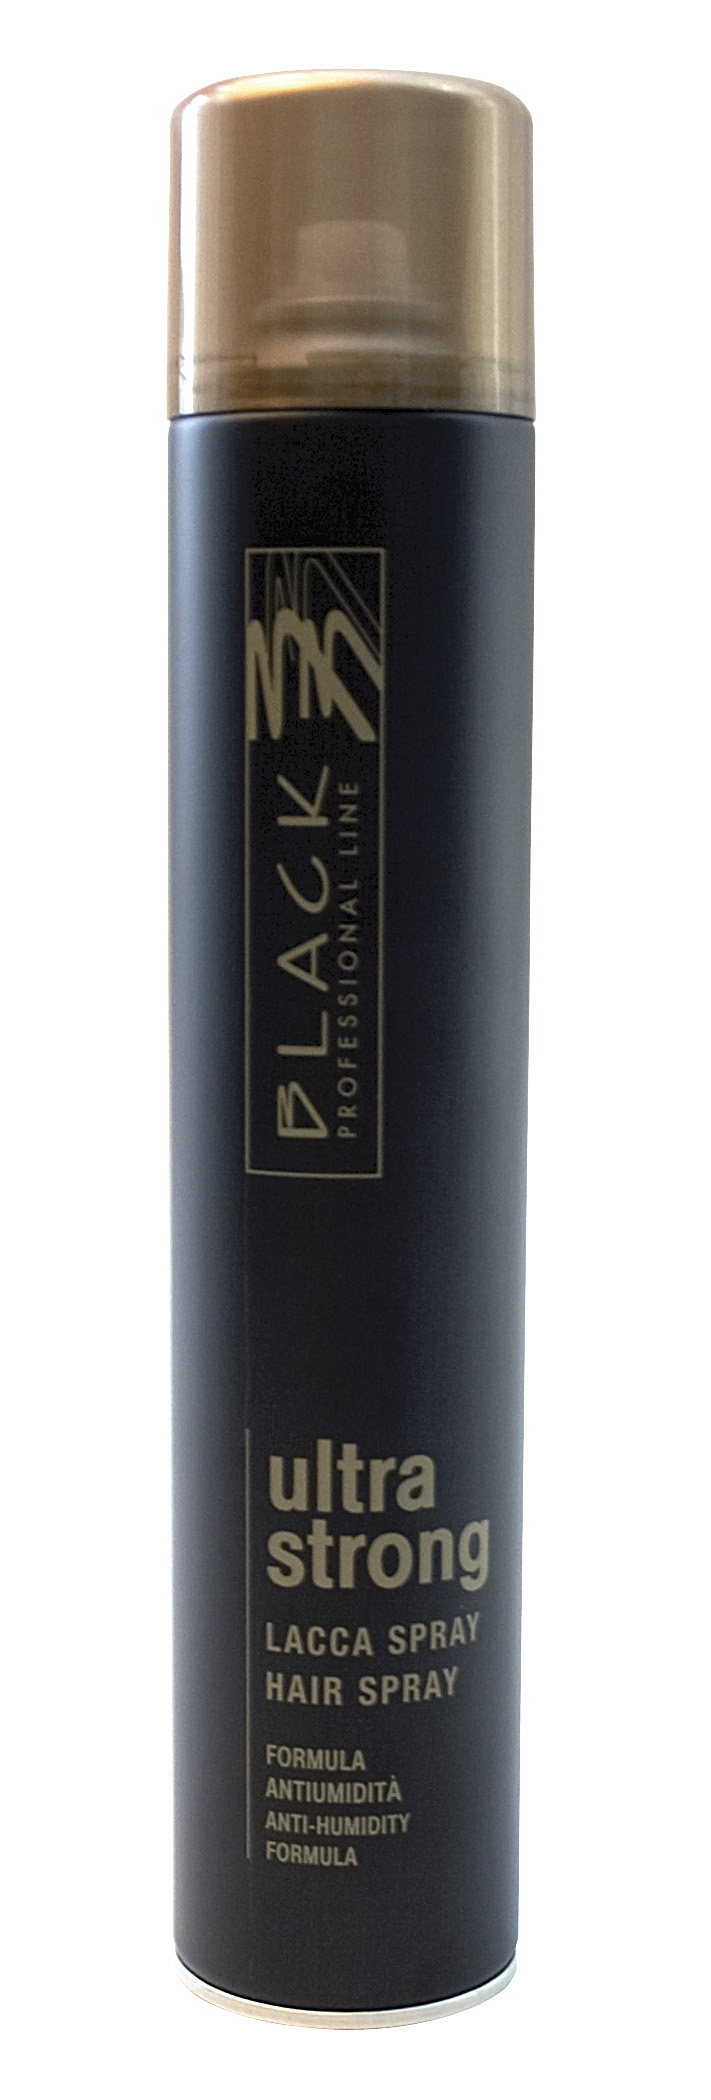 Black Lak Ultra Strong 750 ml